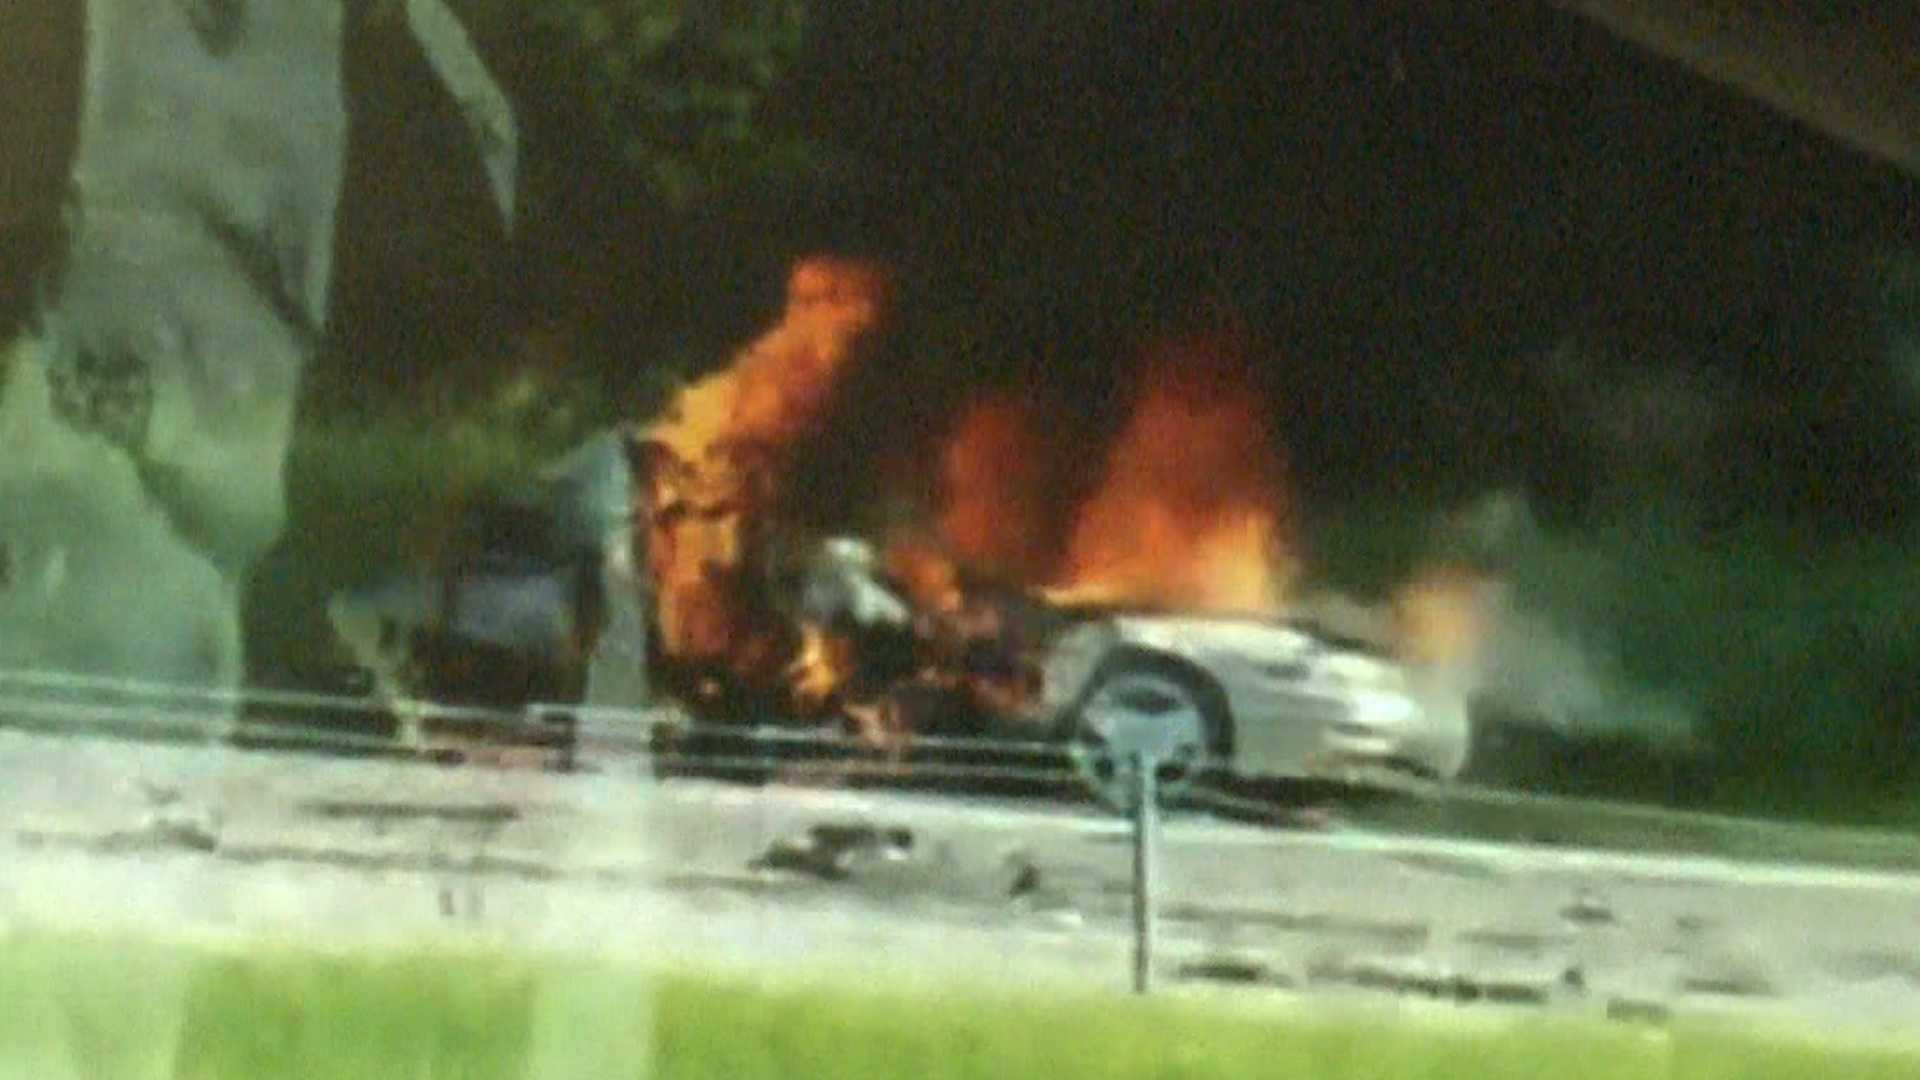 A still from a video captured by a witness shows one of the cars involved in the crash engulfed in flames.